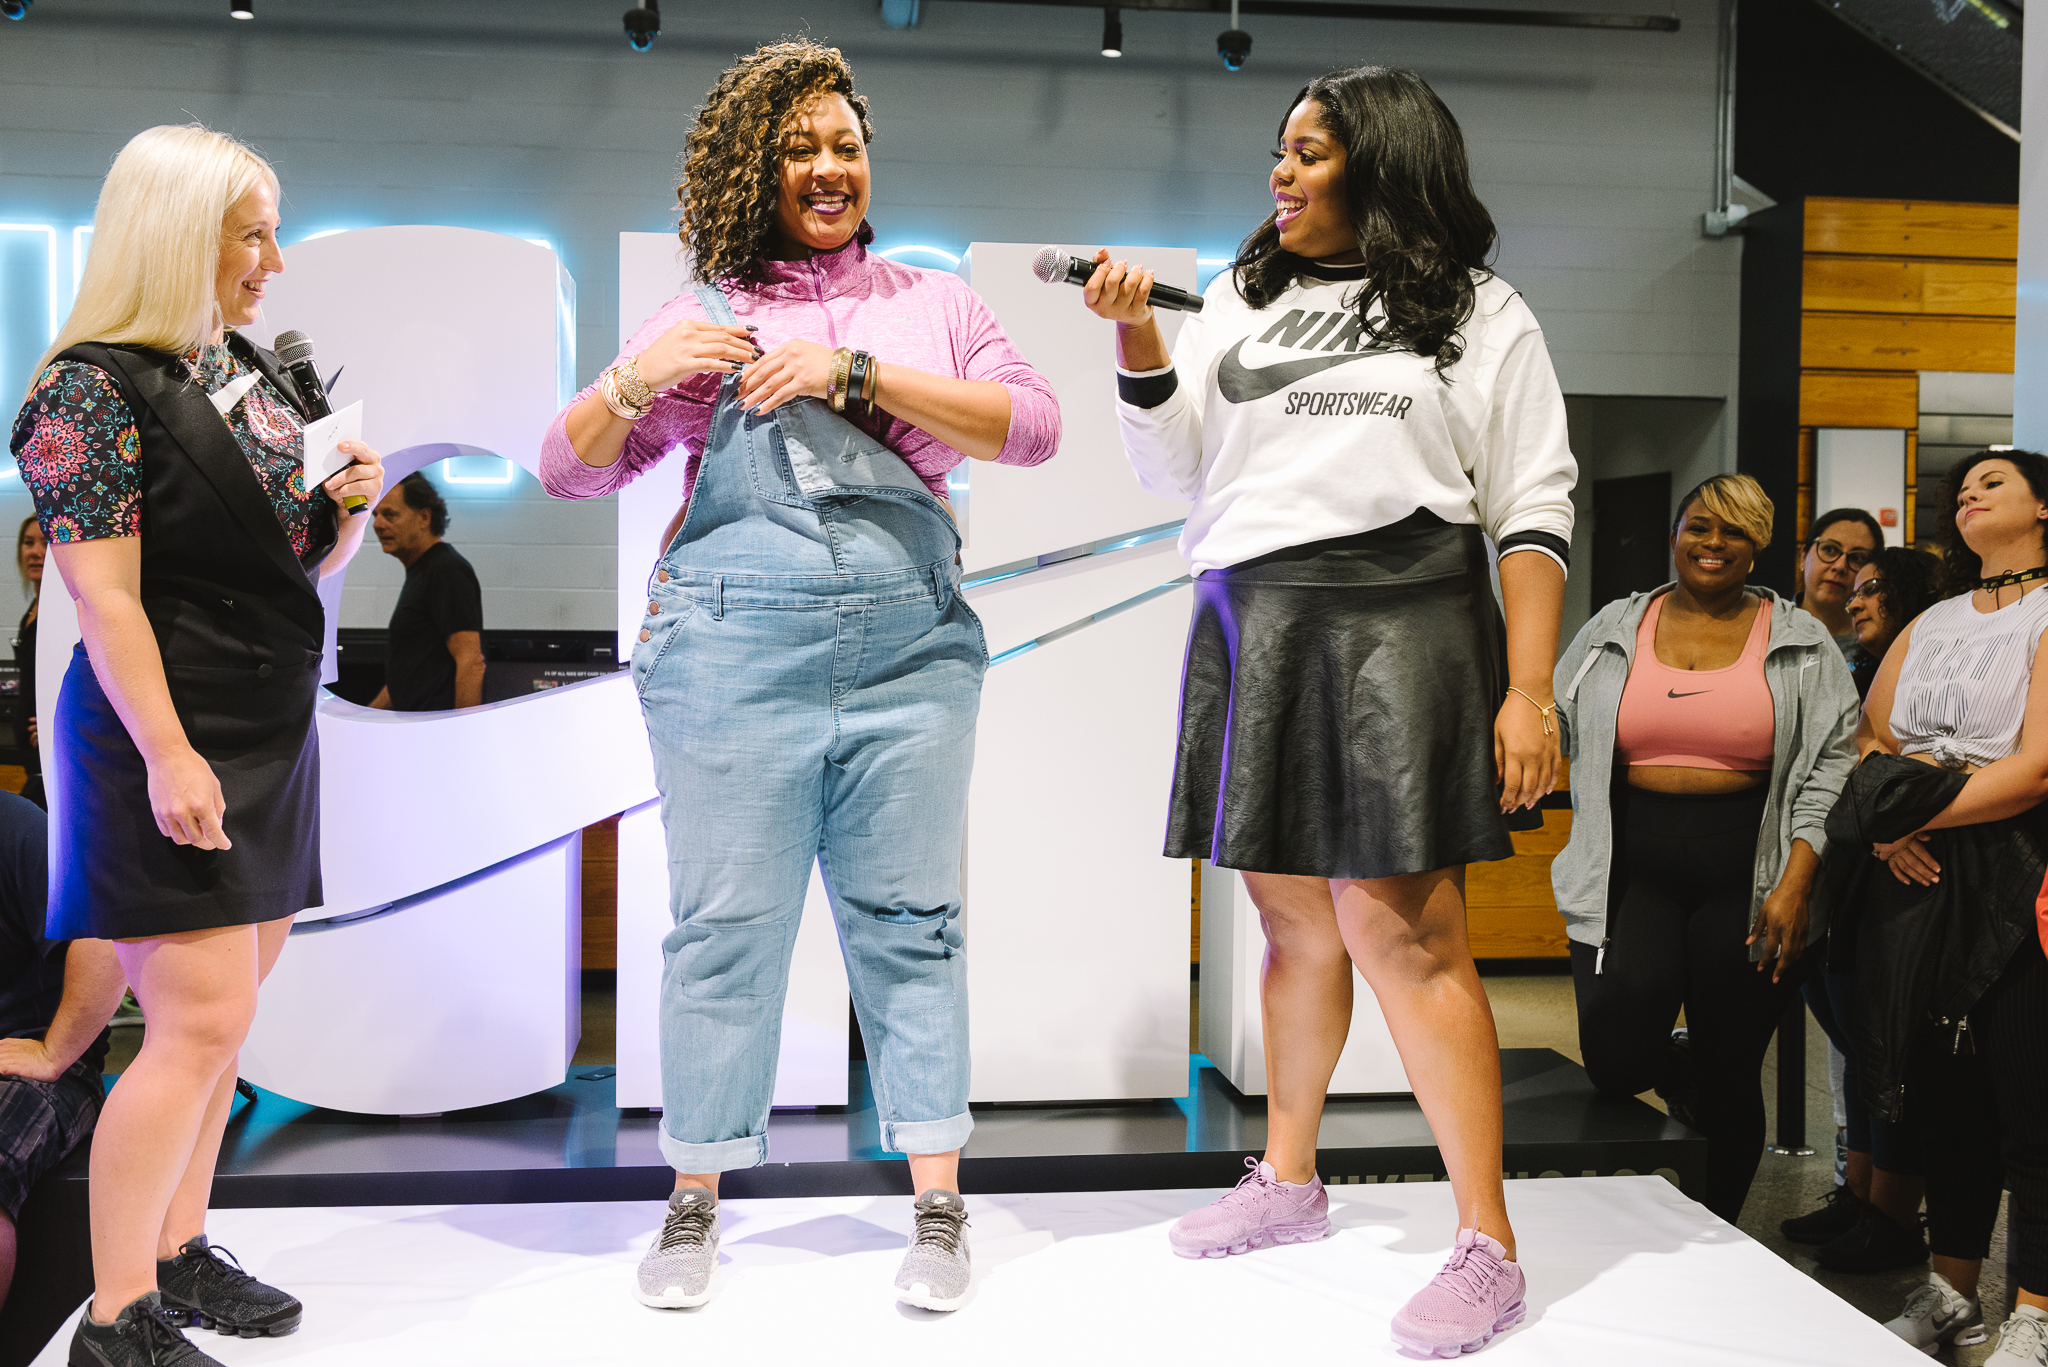 Hayet Rida Chicago Nike Plus Size Line Event Fashion Lifestyle Blogger Nike Air Society Vapor Max 64.jpg